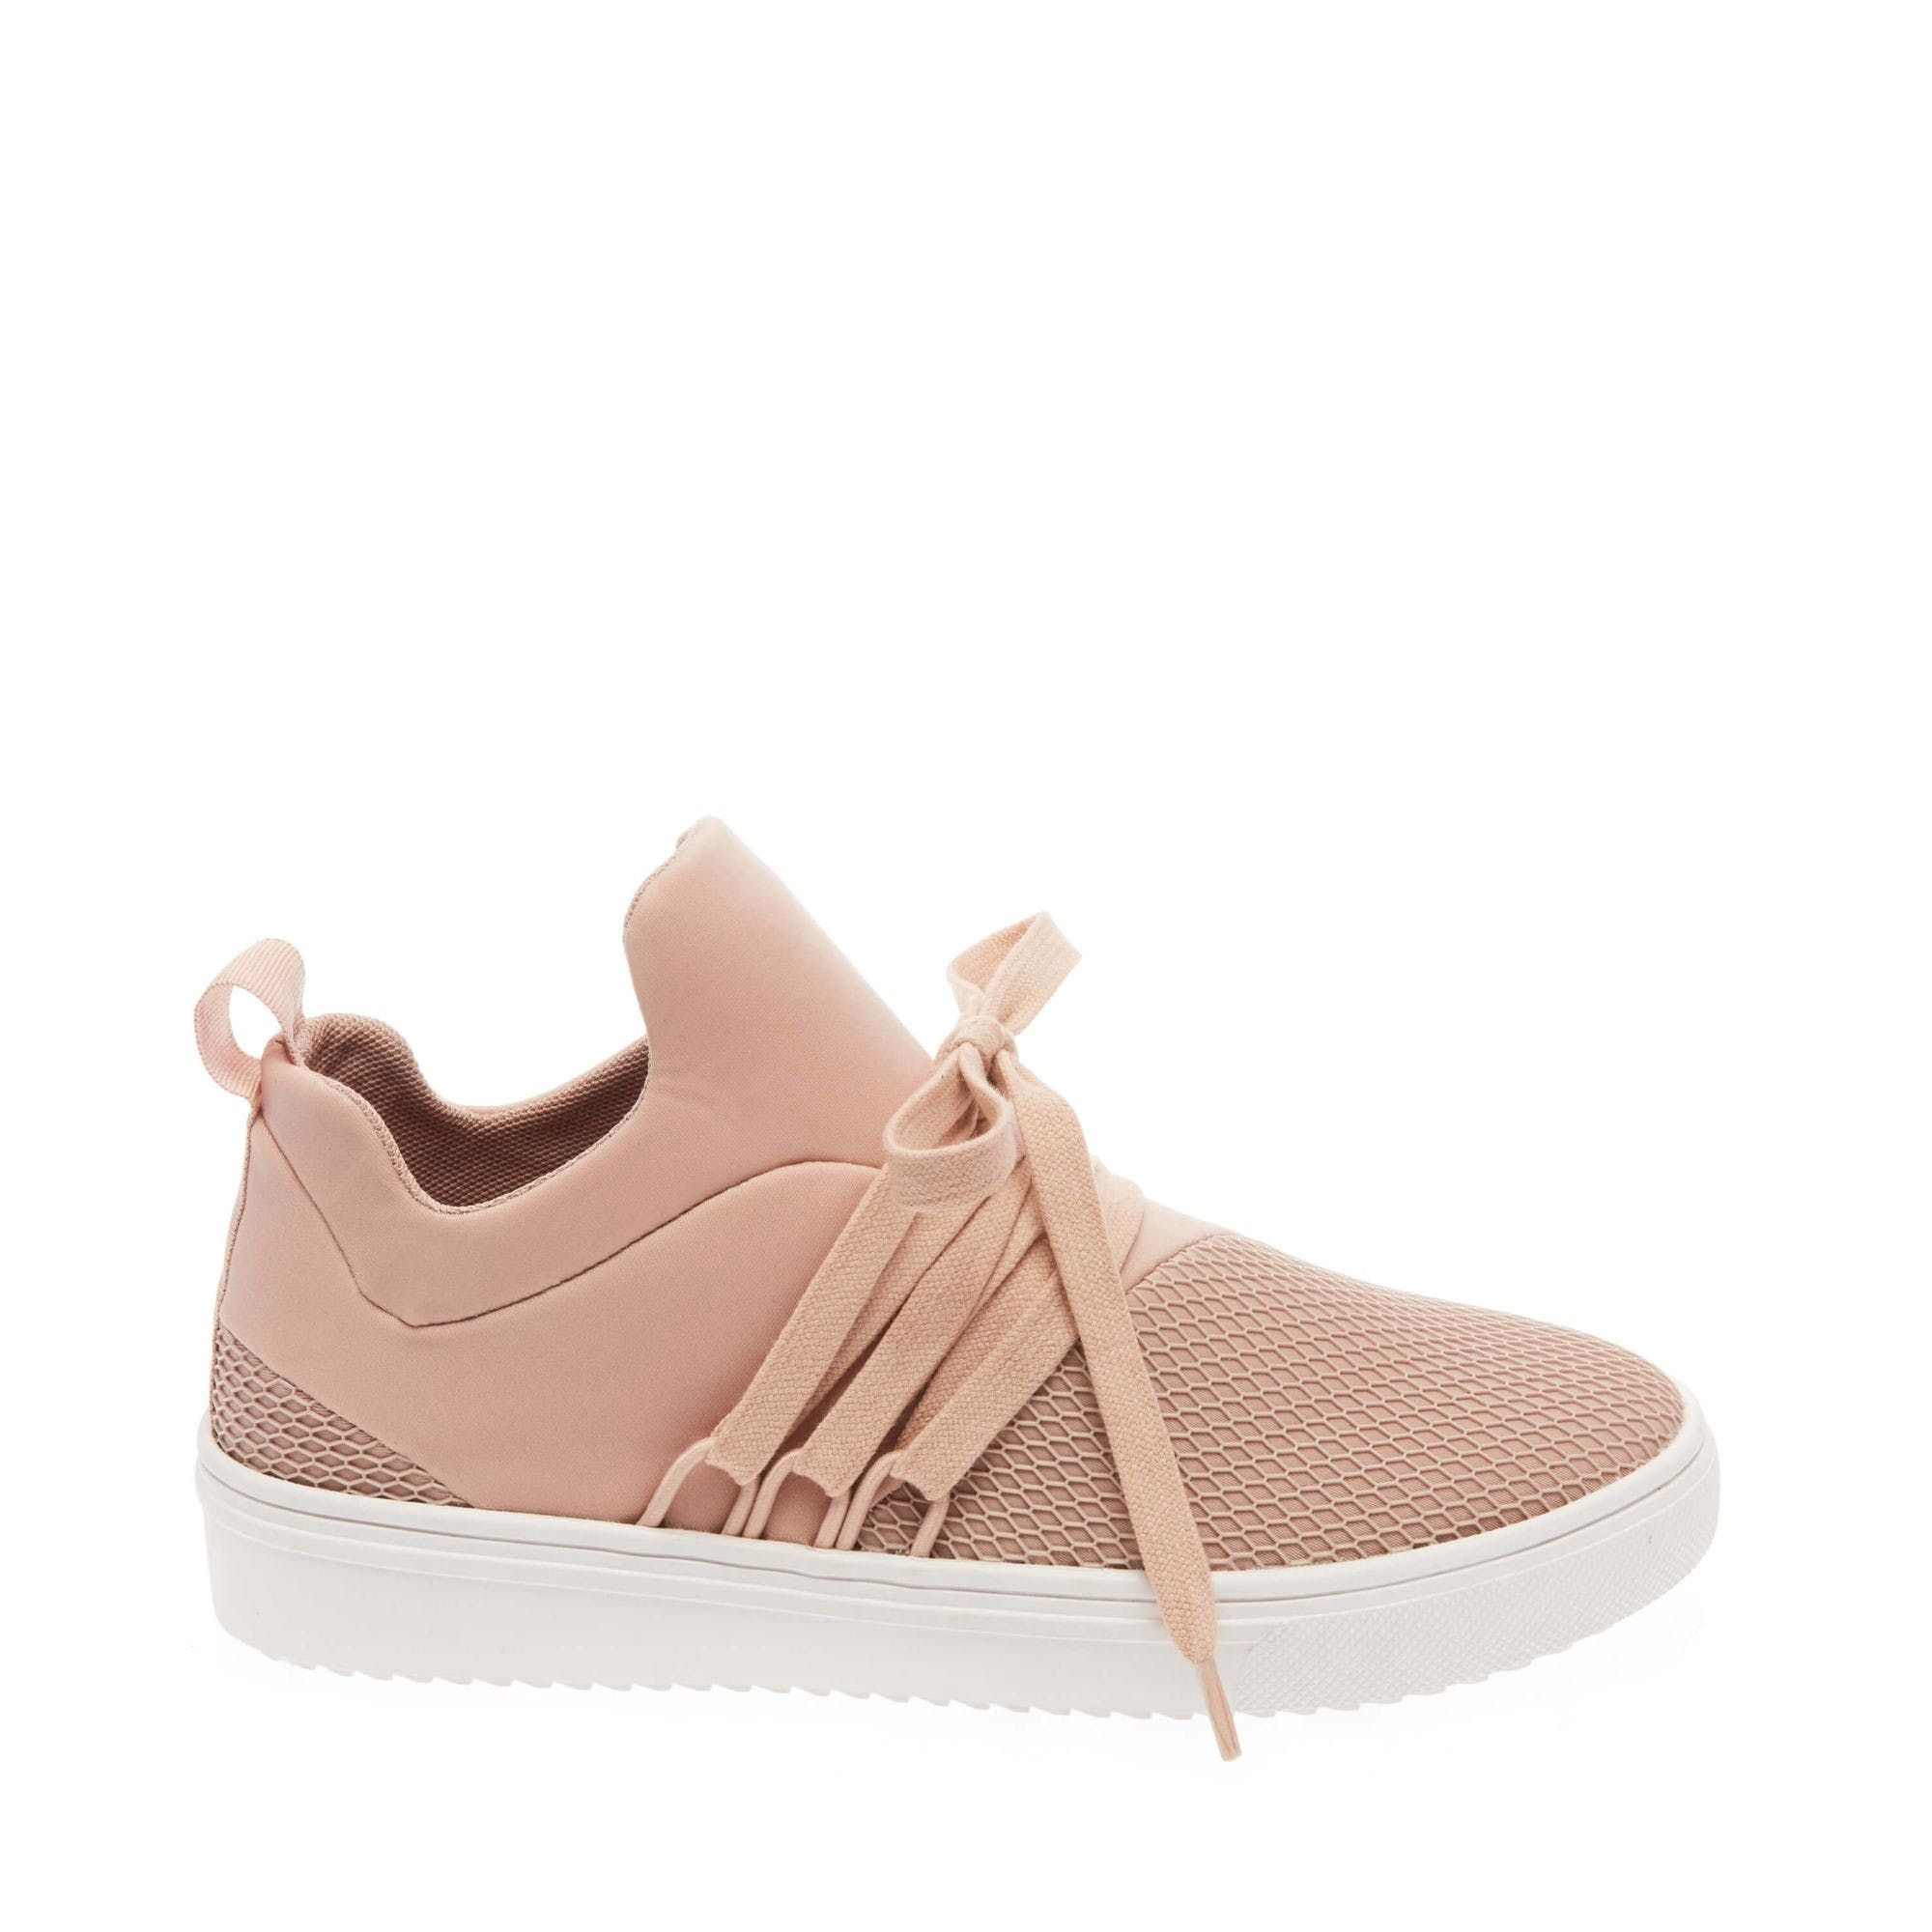 725dc3e6bb39 Dive into the athleisure trend with LANCER by Steve Madden. Asymmetrical  detail and neoprene fabric makes LANCER the coolest casual sneakers for  women.